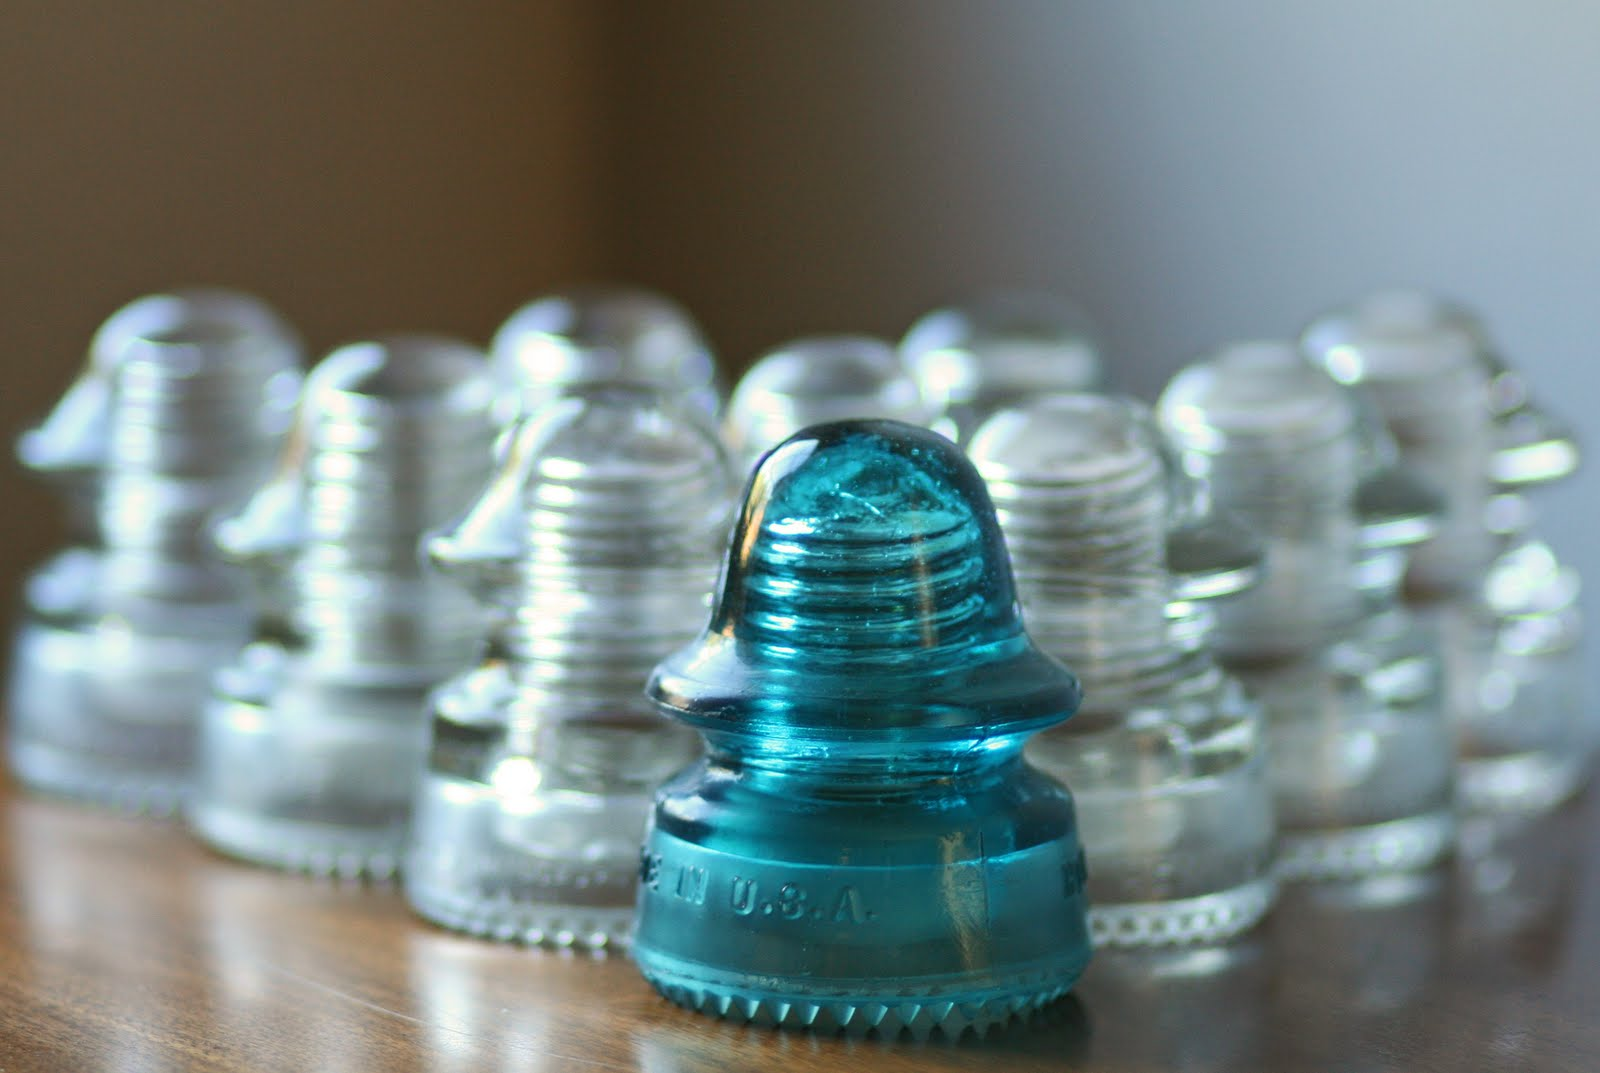 1000 images about vintage insulators on pinterest for Glass insulator ideas